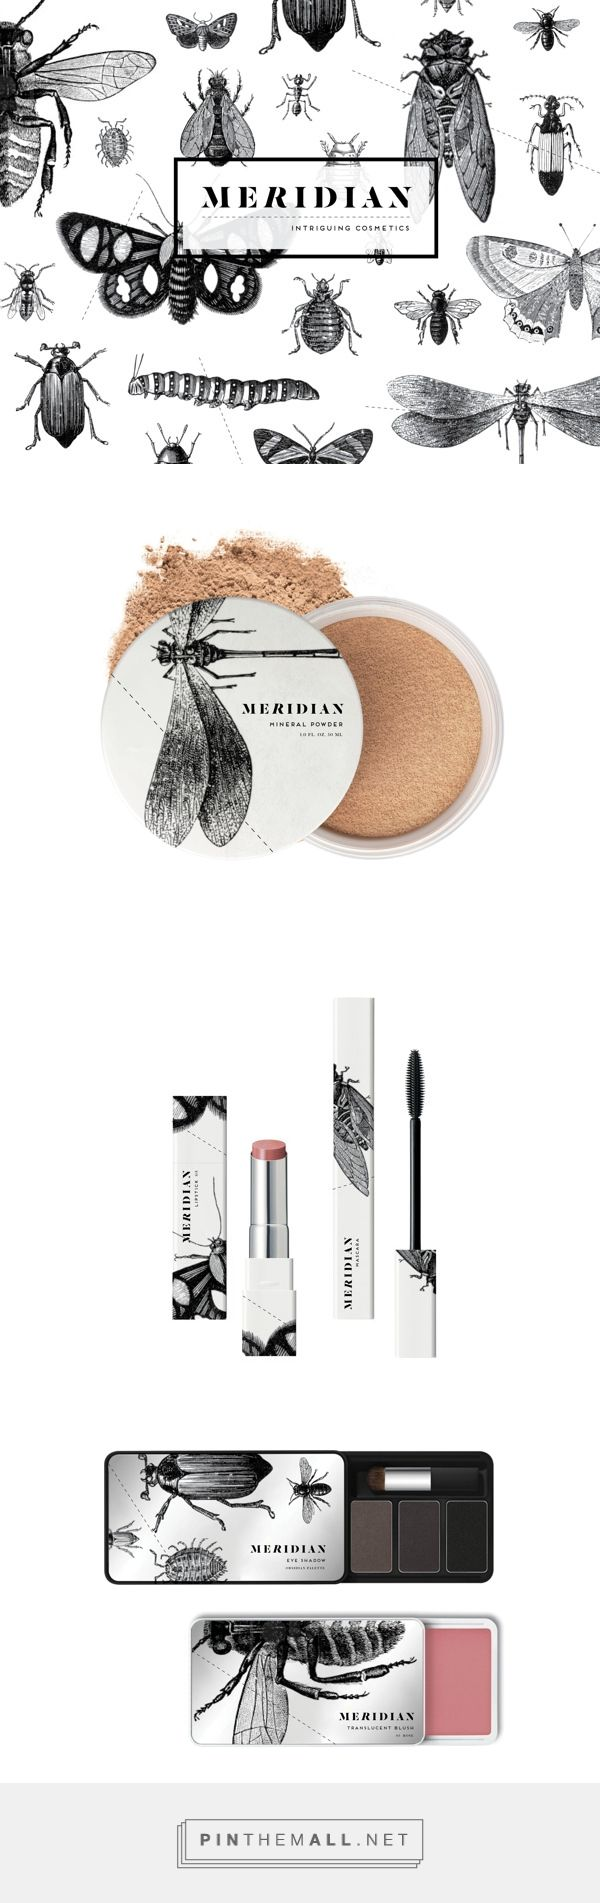 Meridian Cosmetics packaging by Sally Carmichael. Pin curated by #SFields99 insect love PD